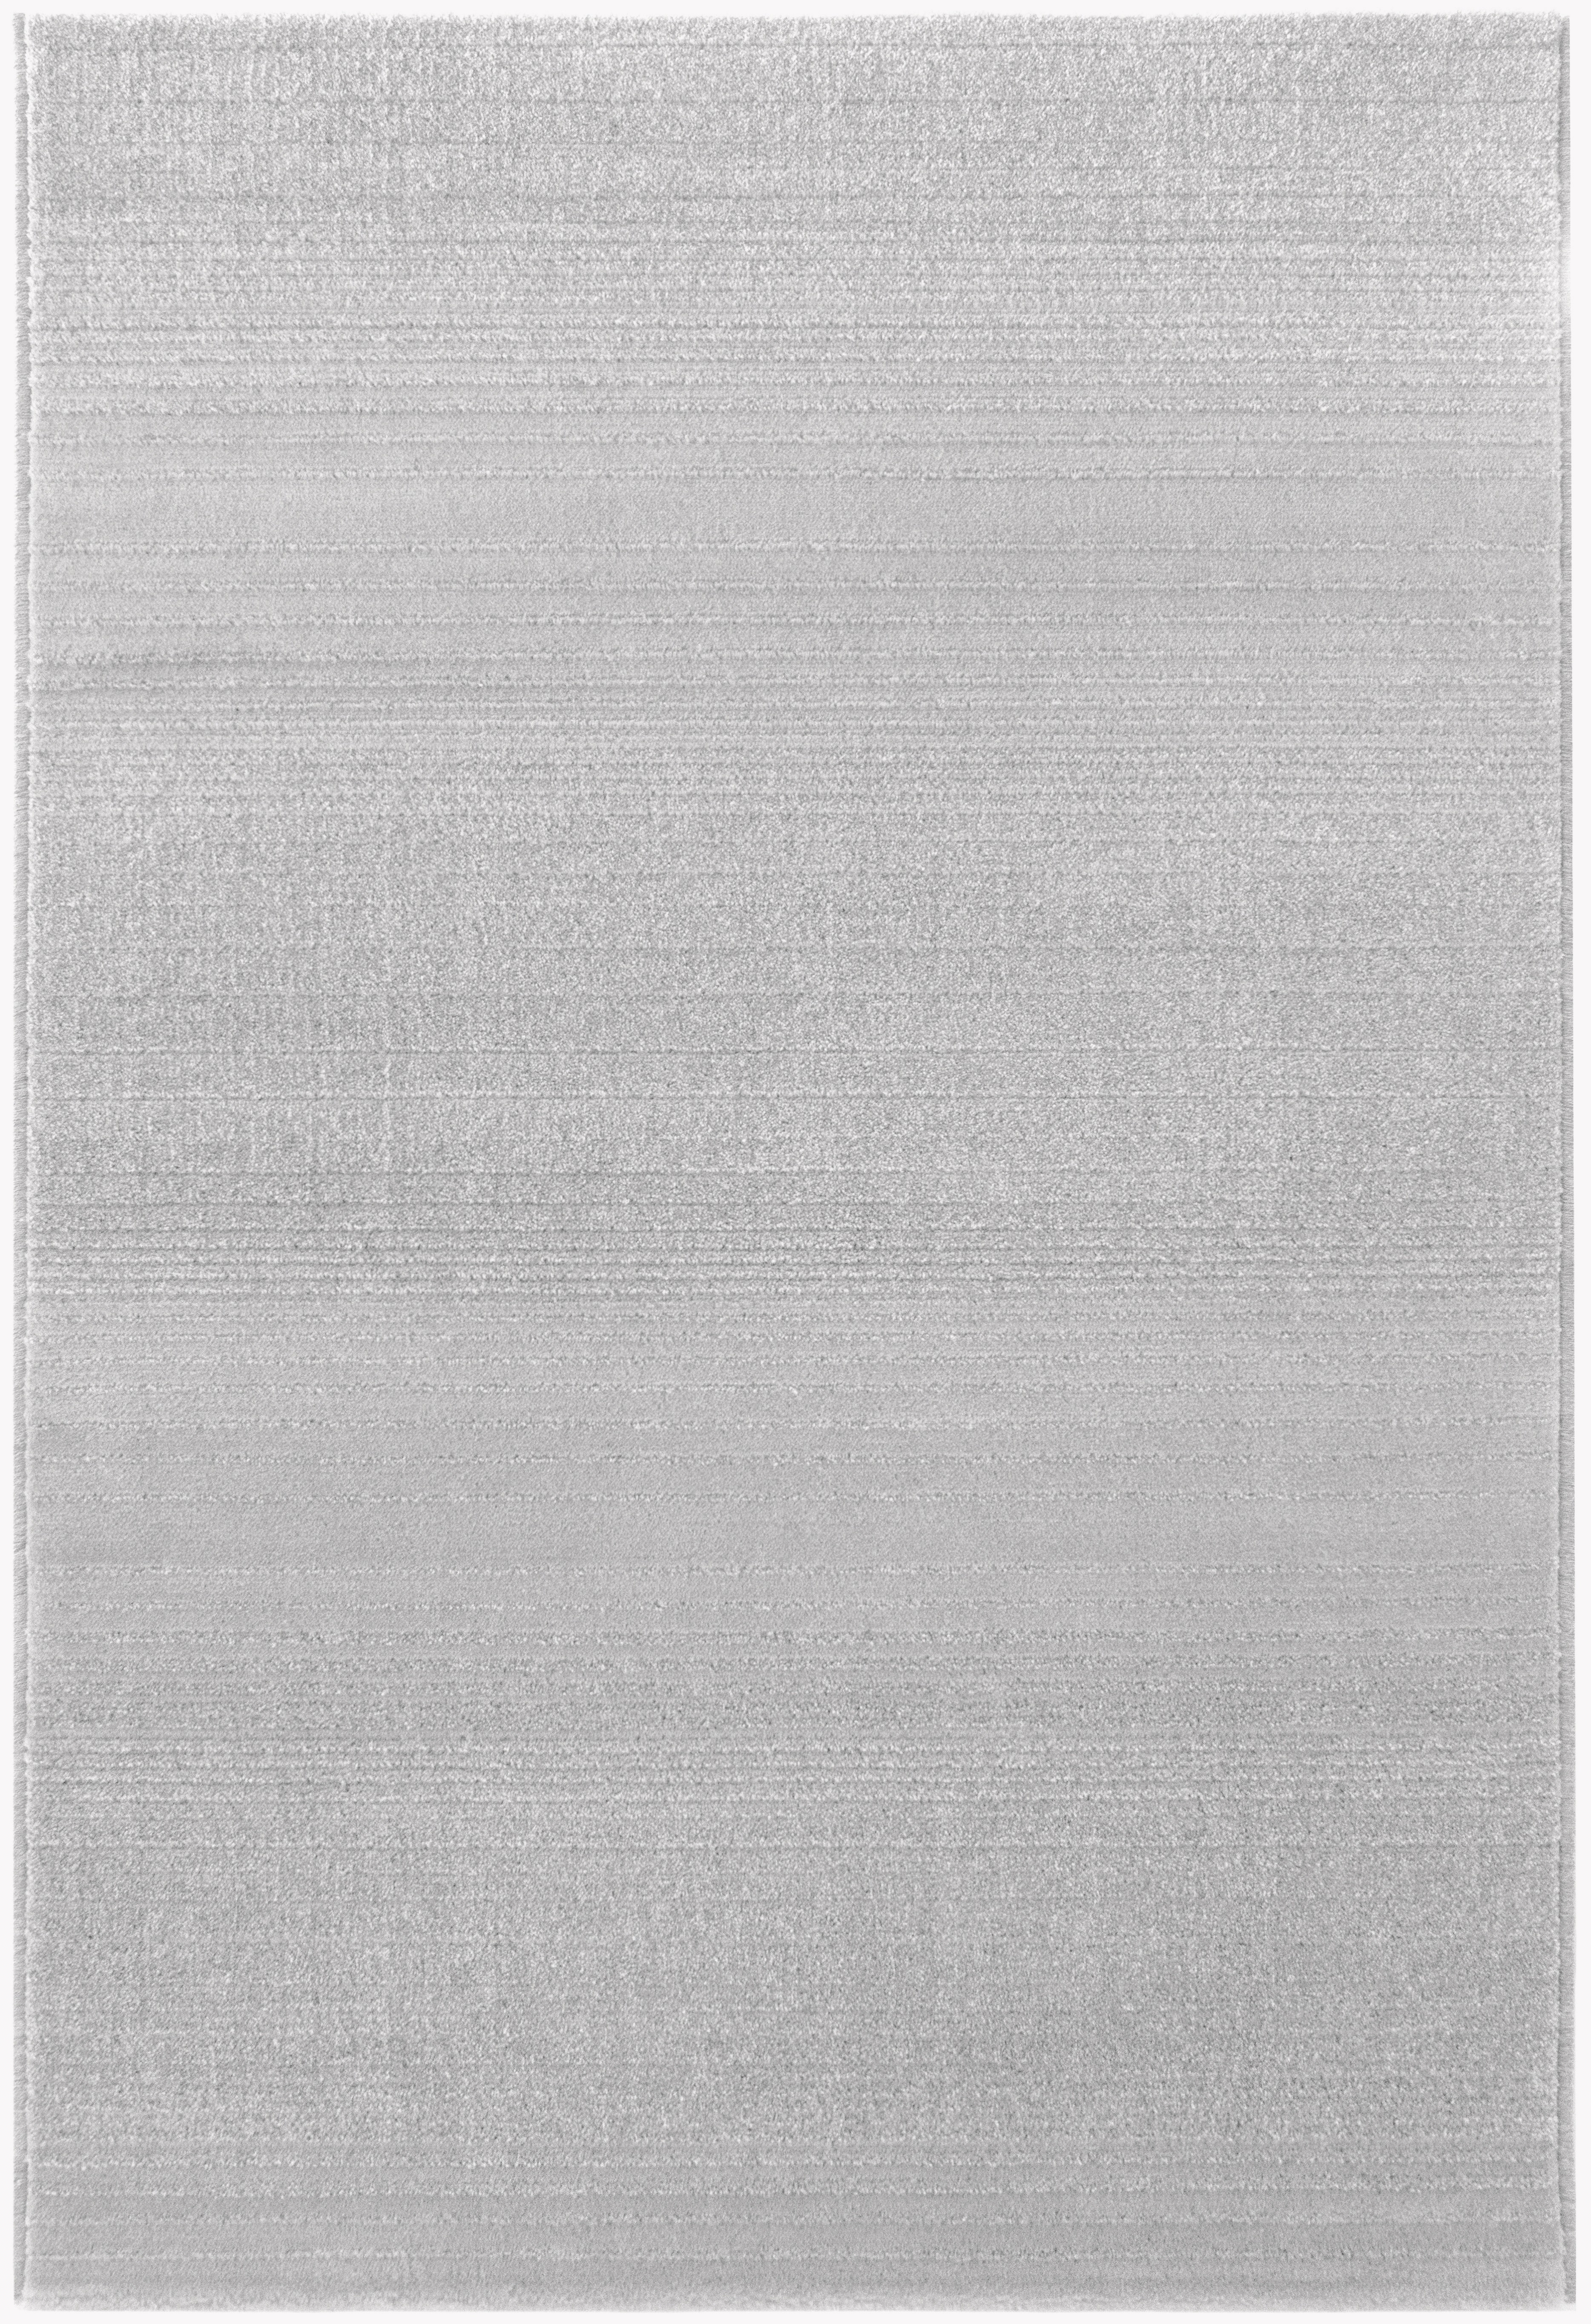 Tapis uni gris clair longues m ches grande salon d for Tapis salon clair